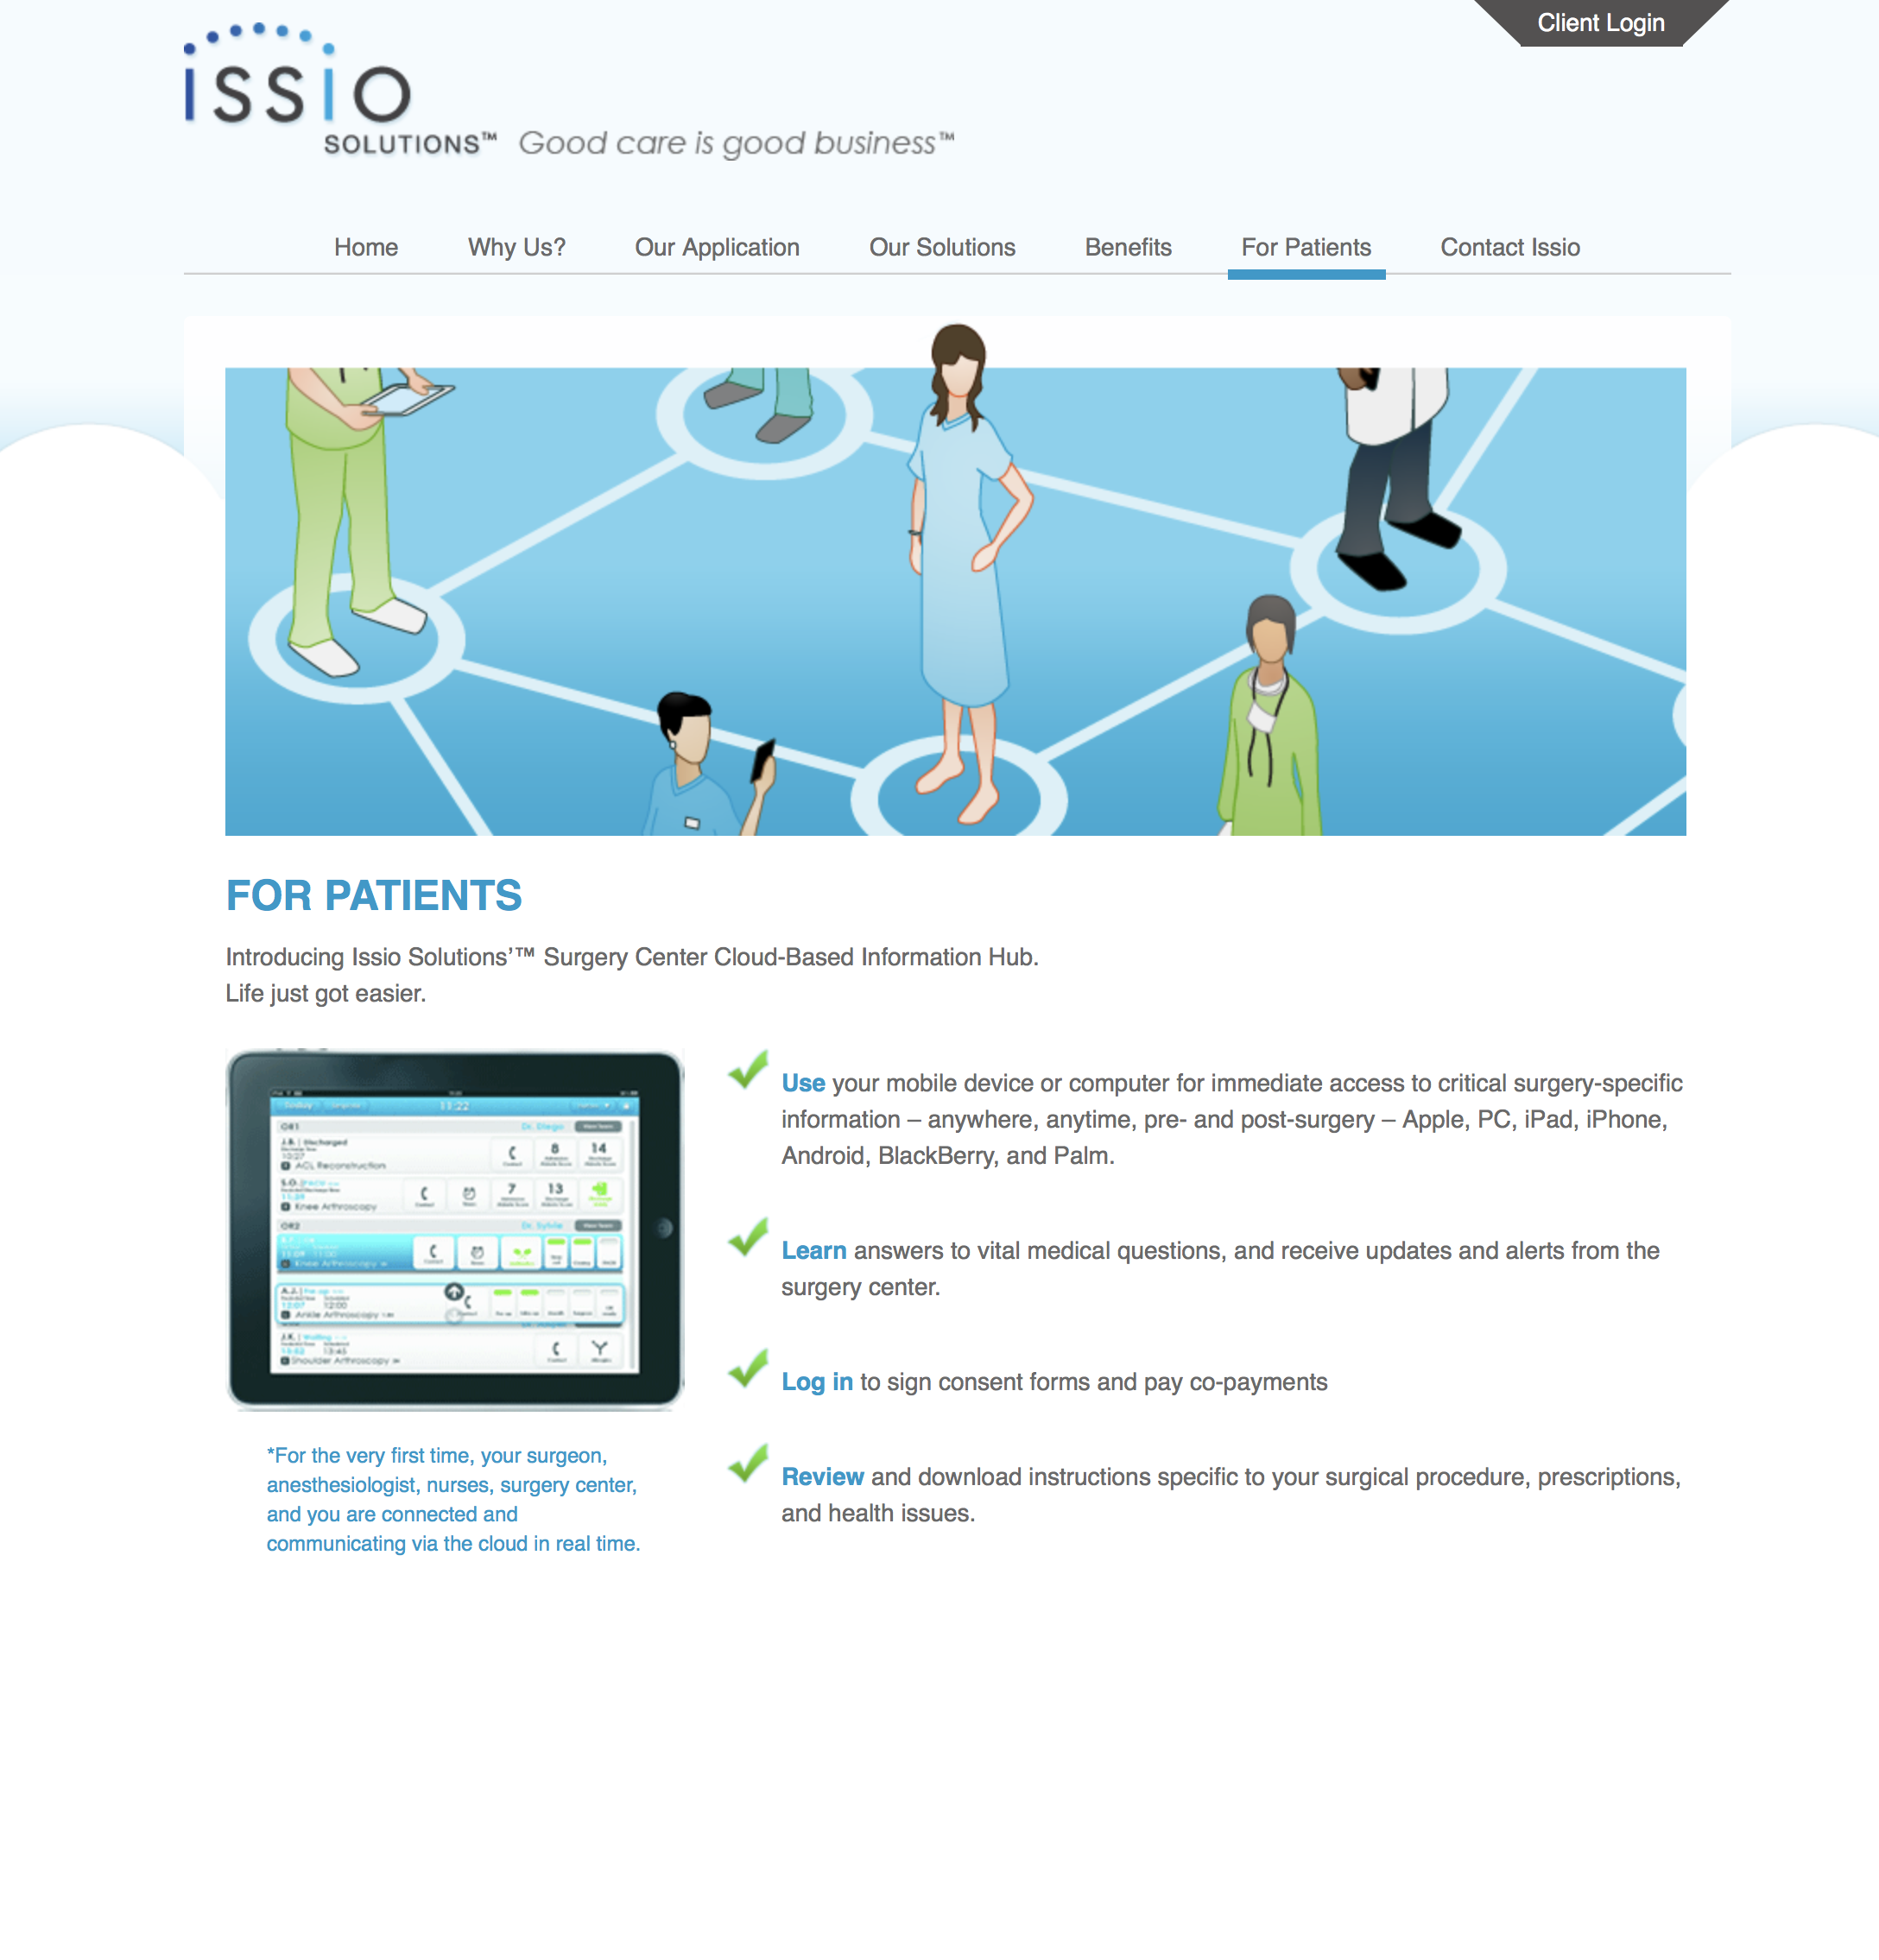 Issio_ForPatients_080716.png